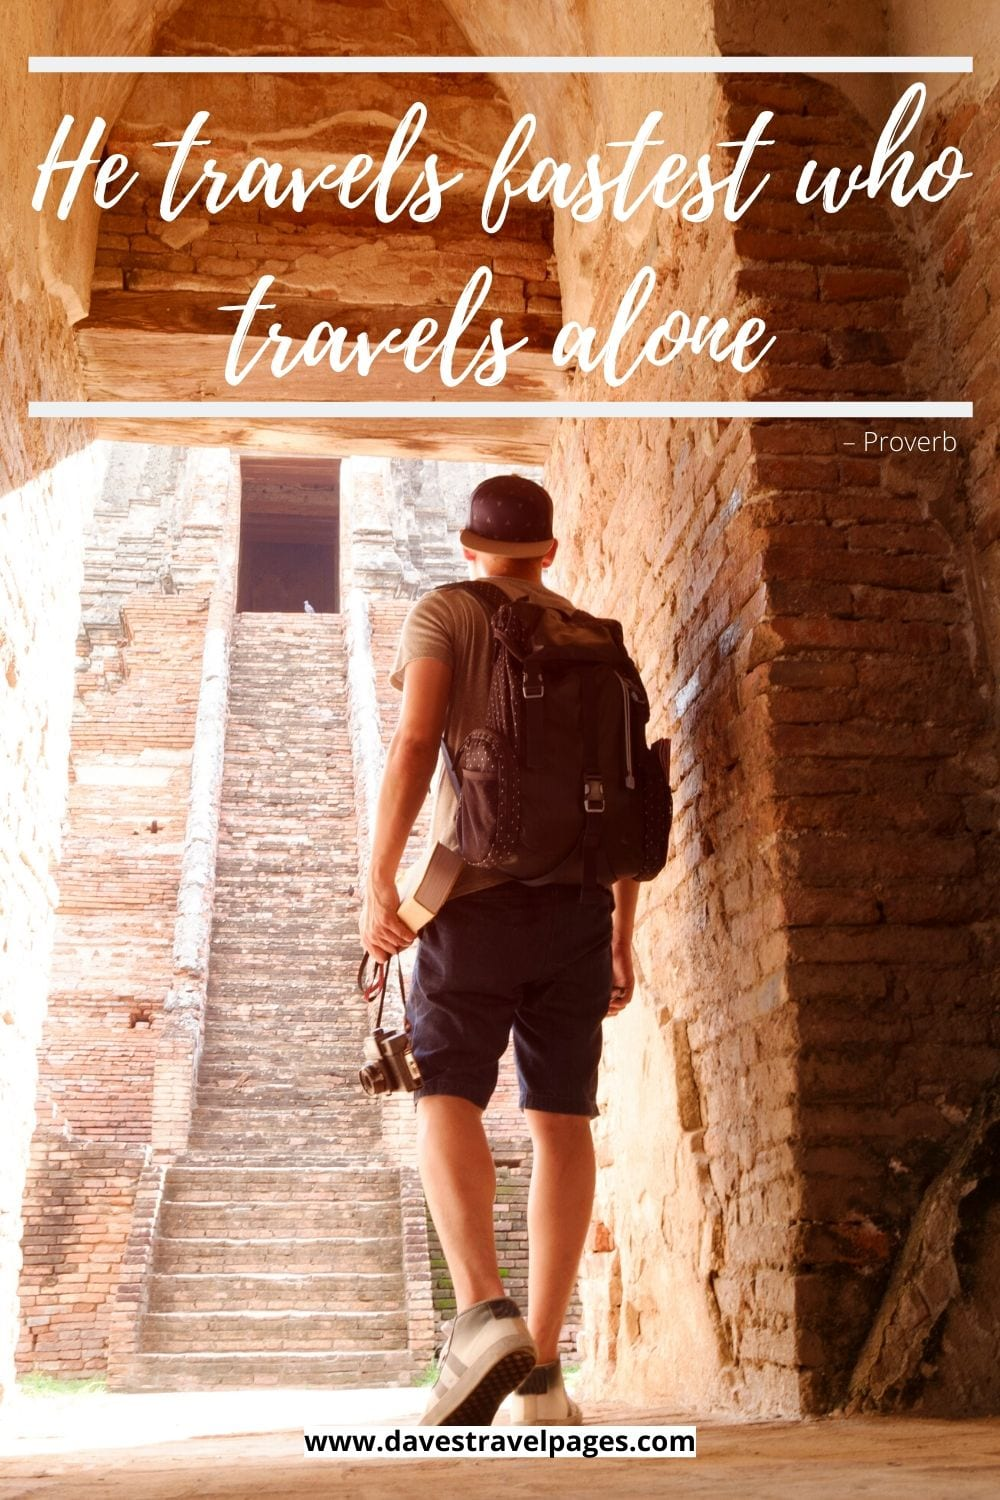 """Collection of Quotes in Travel: """"He travels fastest who travels alone."""" – Proverb"""